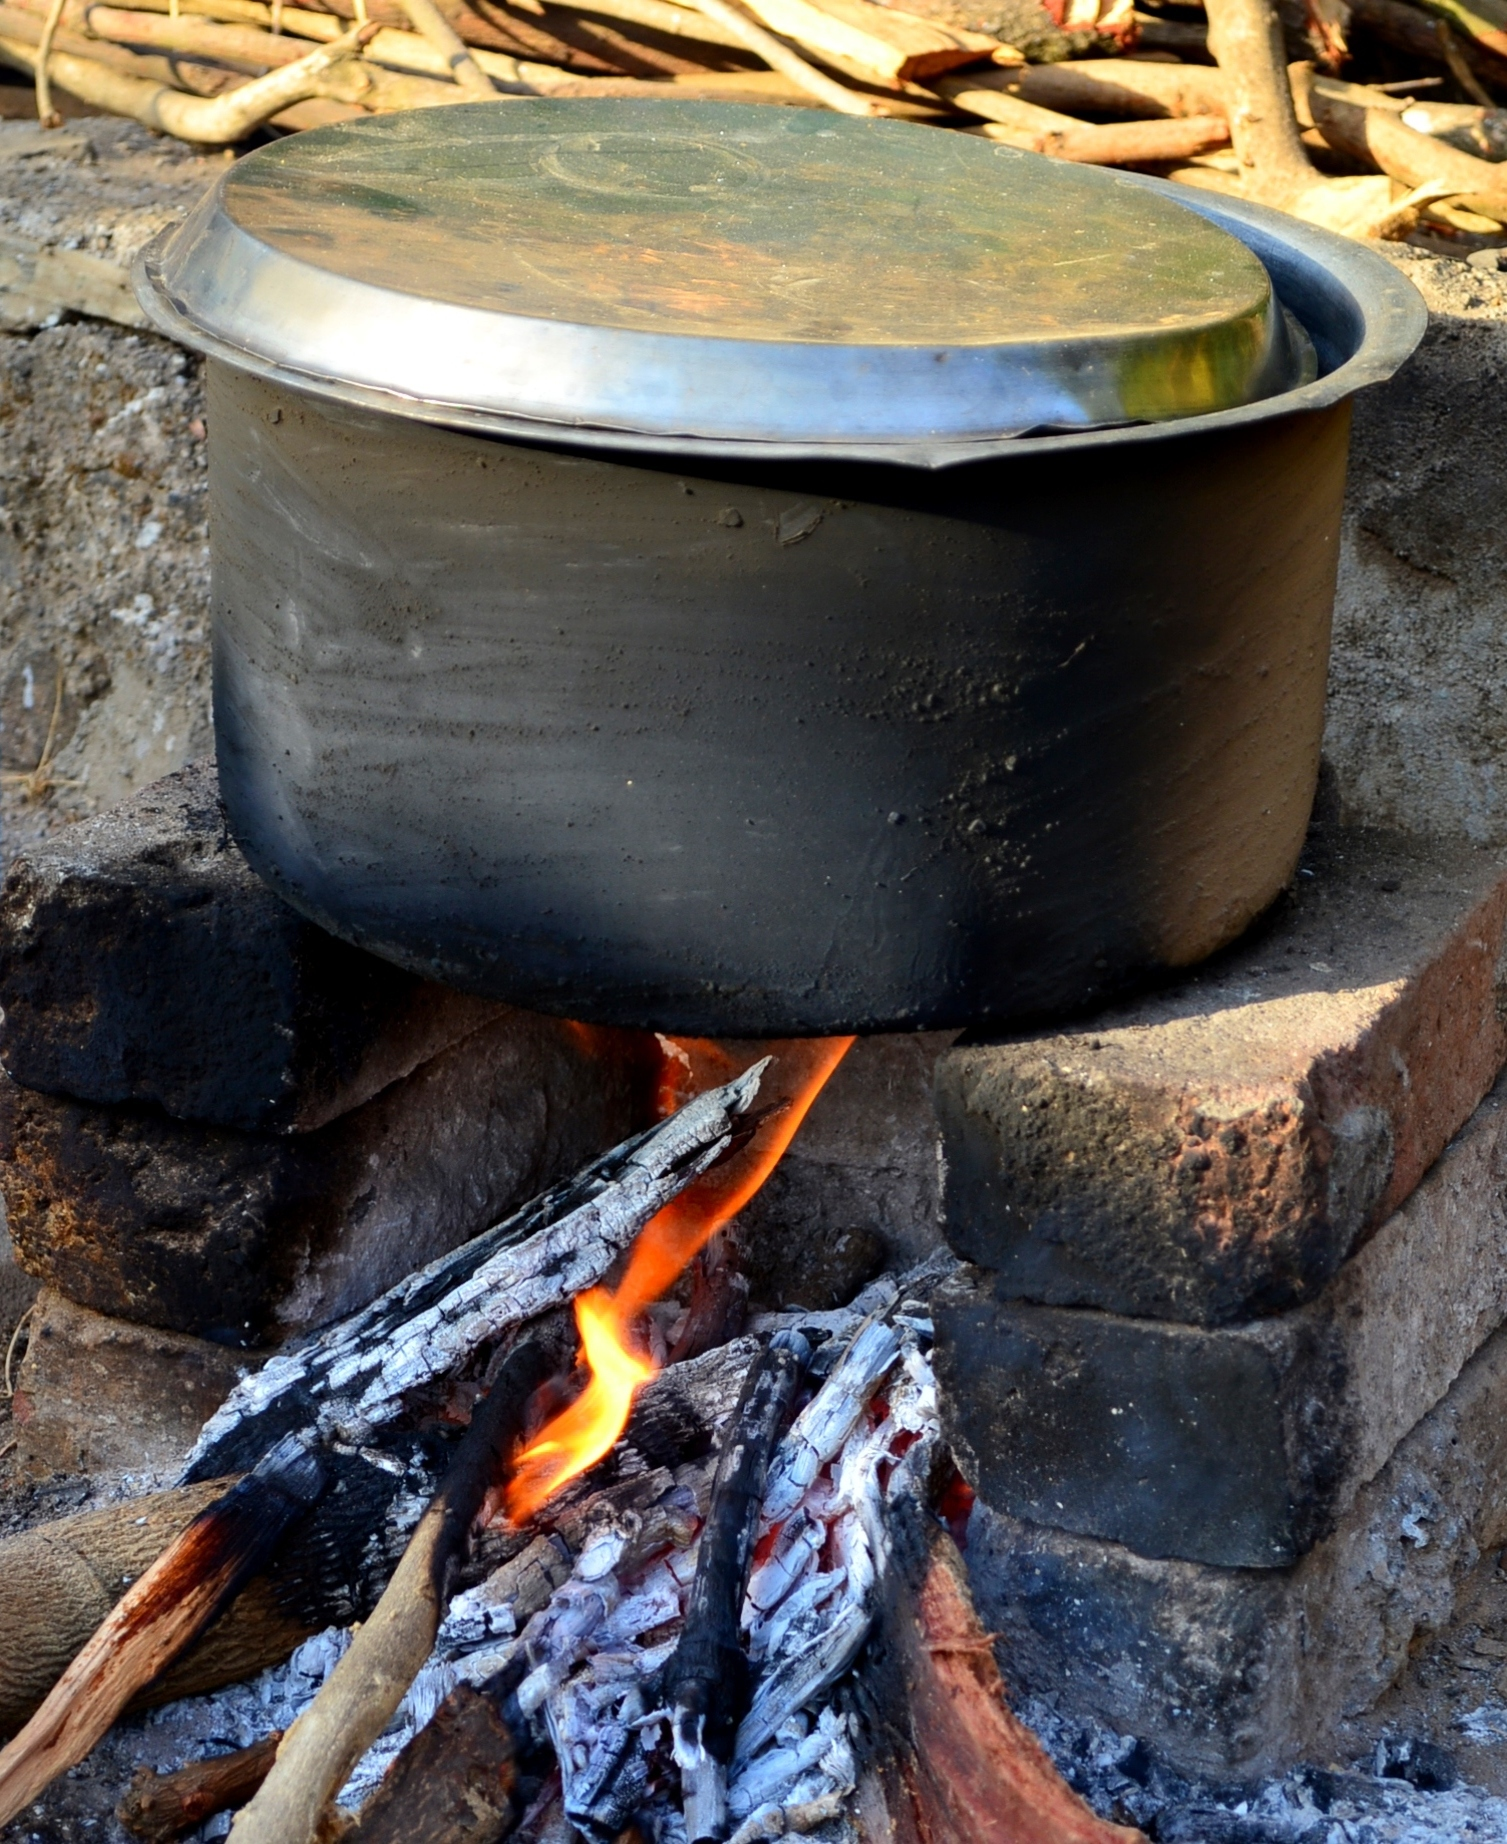 Food being cooked on Chulah.